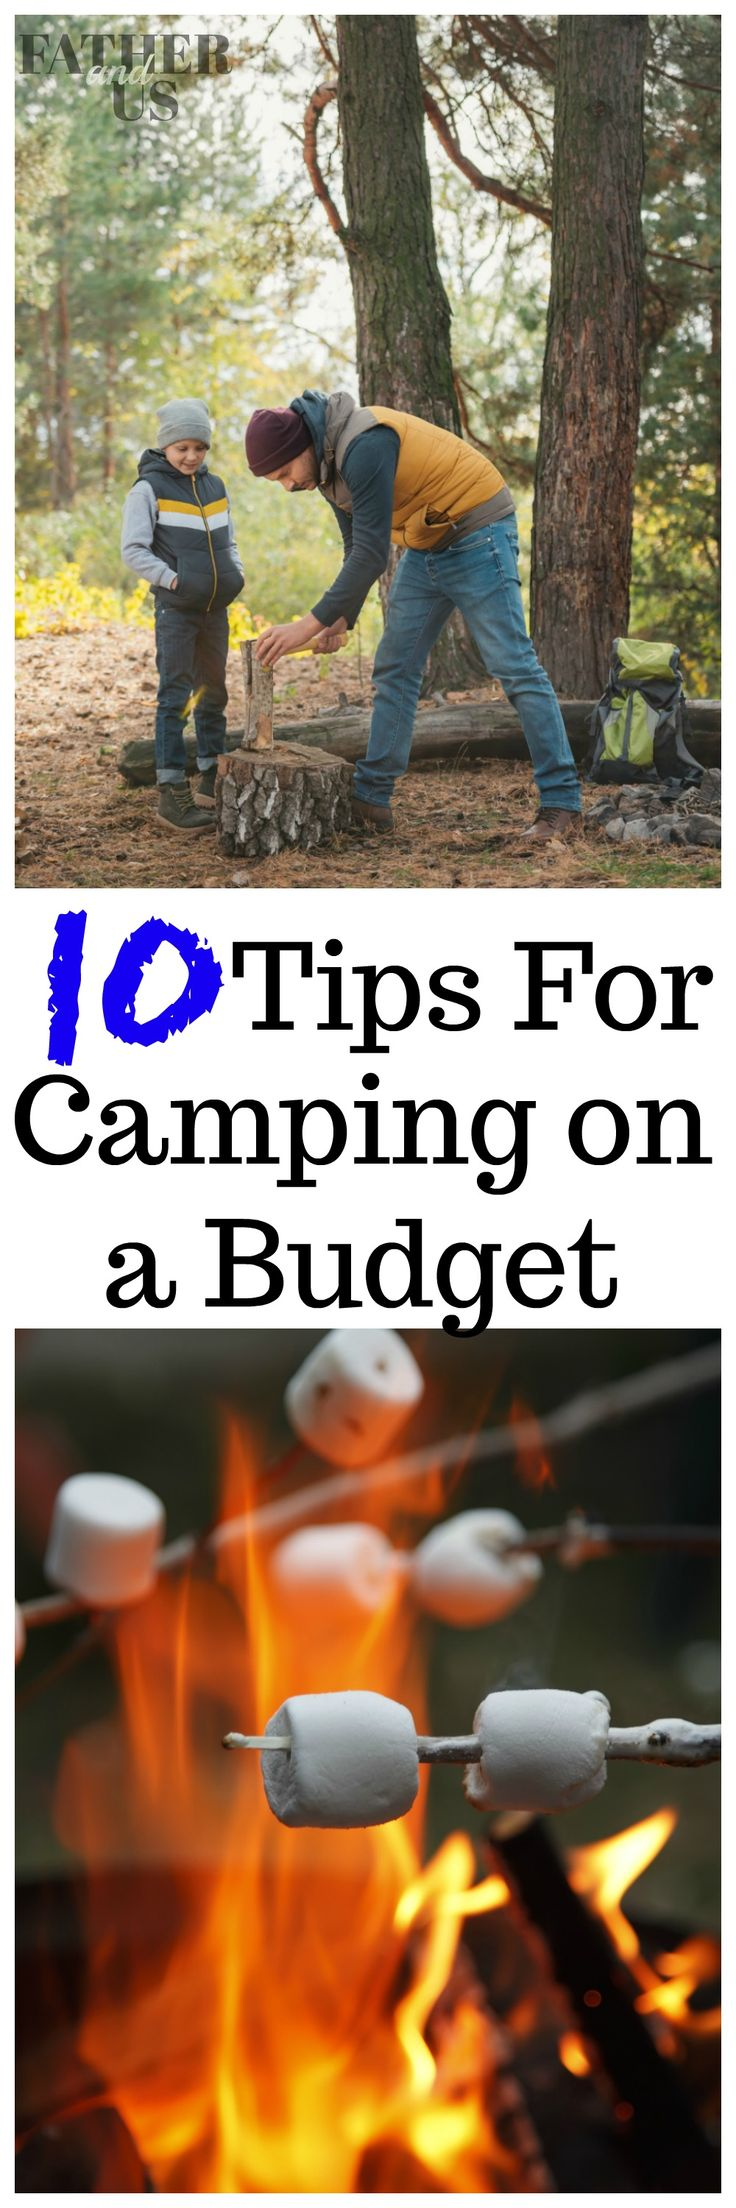 Camping can be one of the best family activities that you can do. But, if your not careful, it can get pretty expensive. Here are some ideas, tips and hacks that will help you have all the outdoor fun without breaking the bank! From finding cheap food options to creating a checklist for all the essentials you may actually already have, this guide will be sure to help both you and your pocketbook on your next camping adventure.